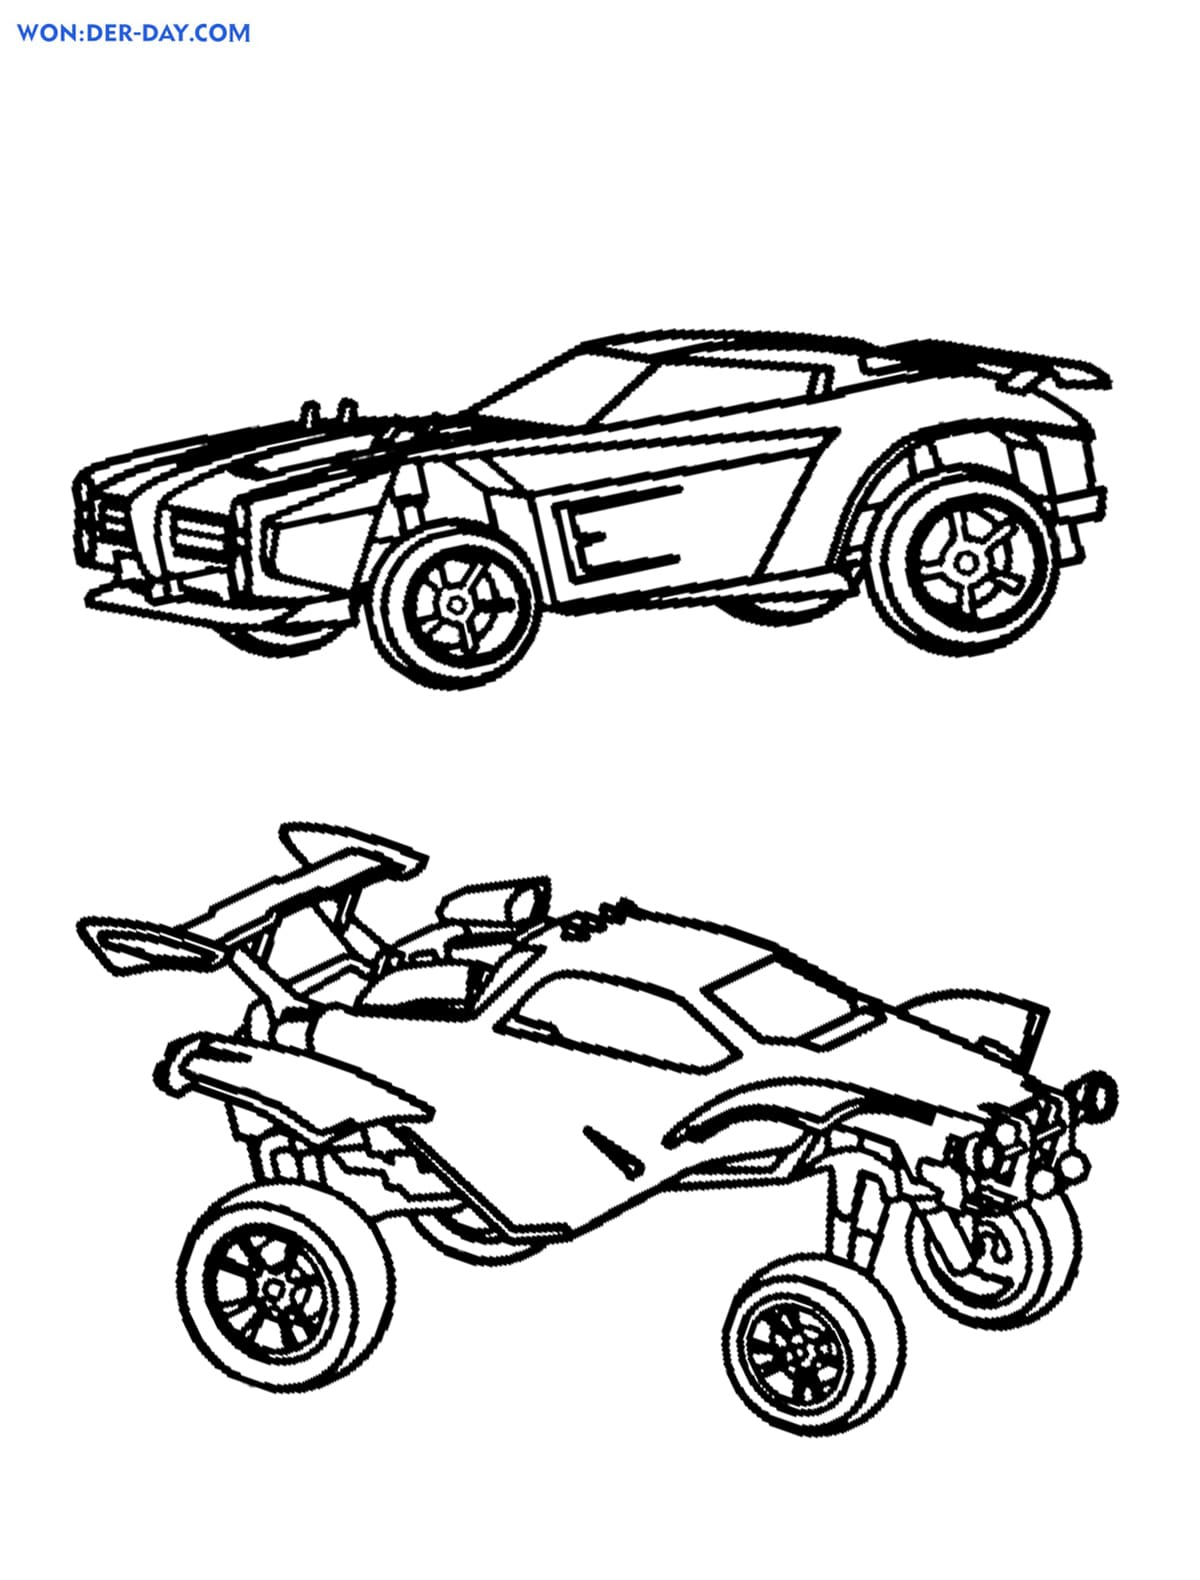 Rocket League Drawing : rocket, league, drawing, Rocket, League, Coloring, Pages, Printwonder-day.com